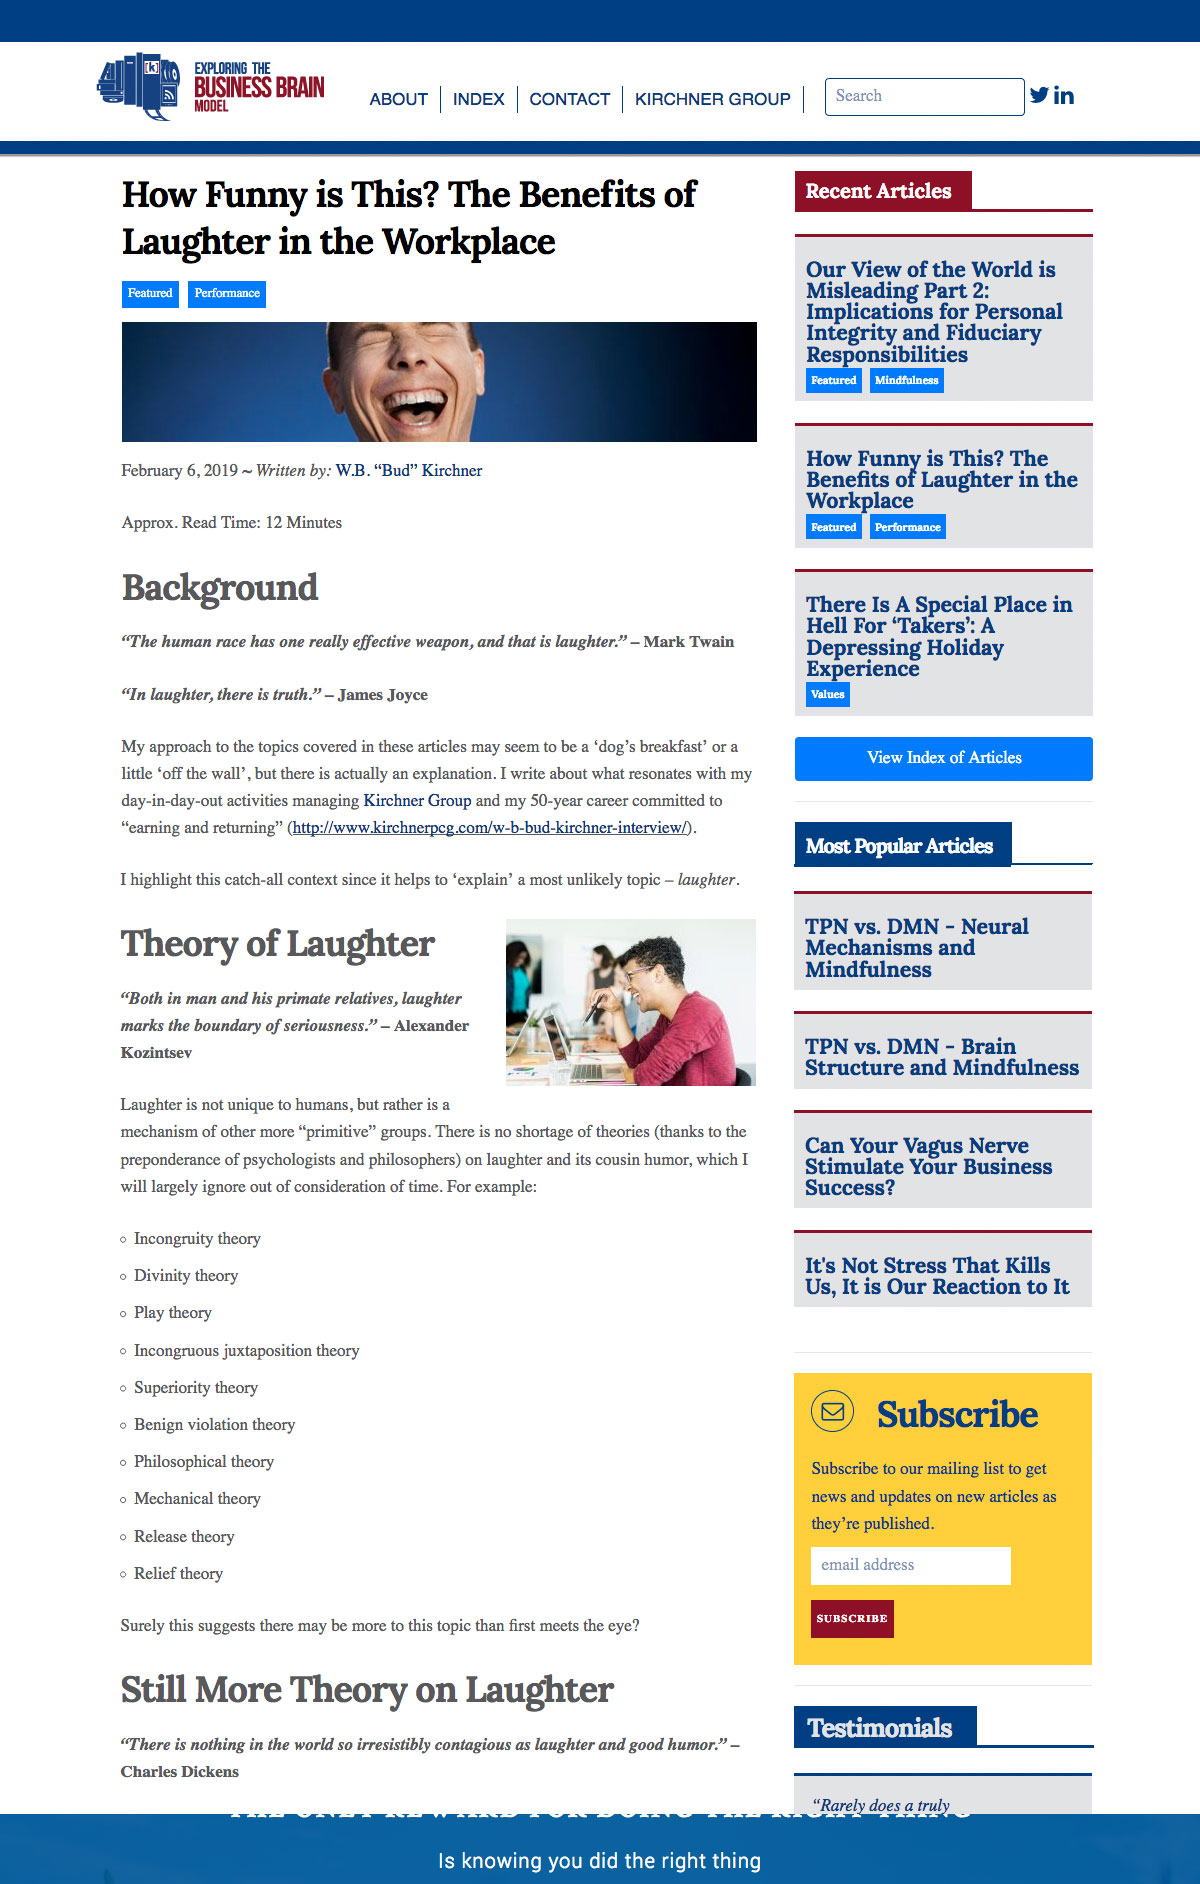 Exploring the Business Brain Site Article Template